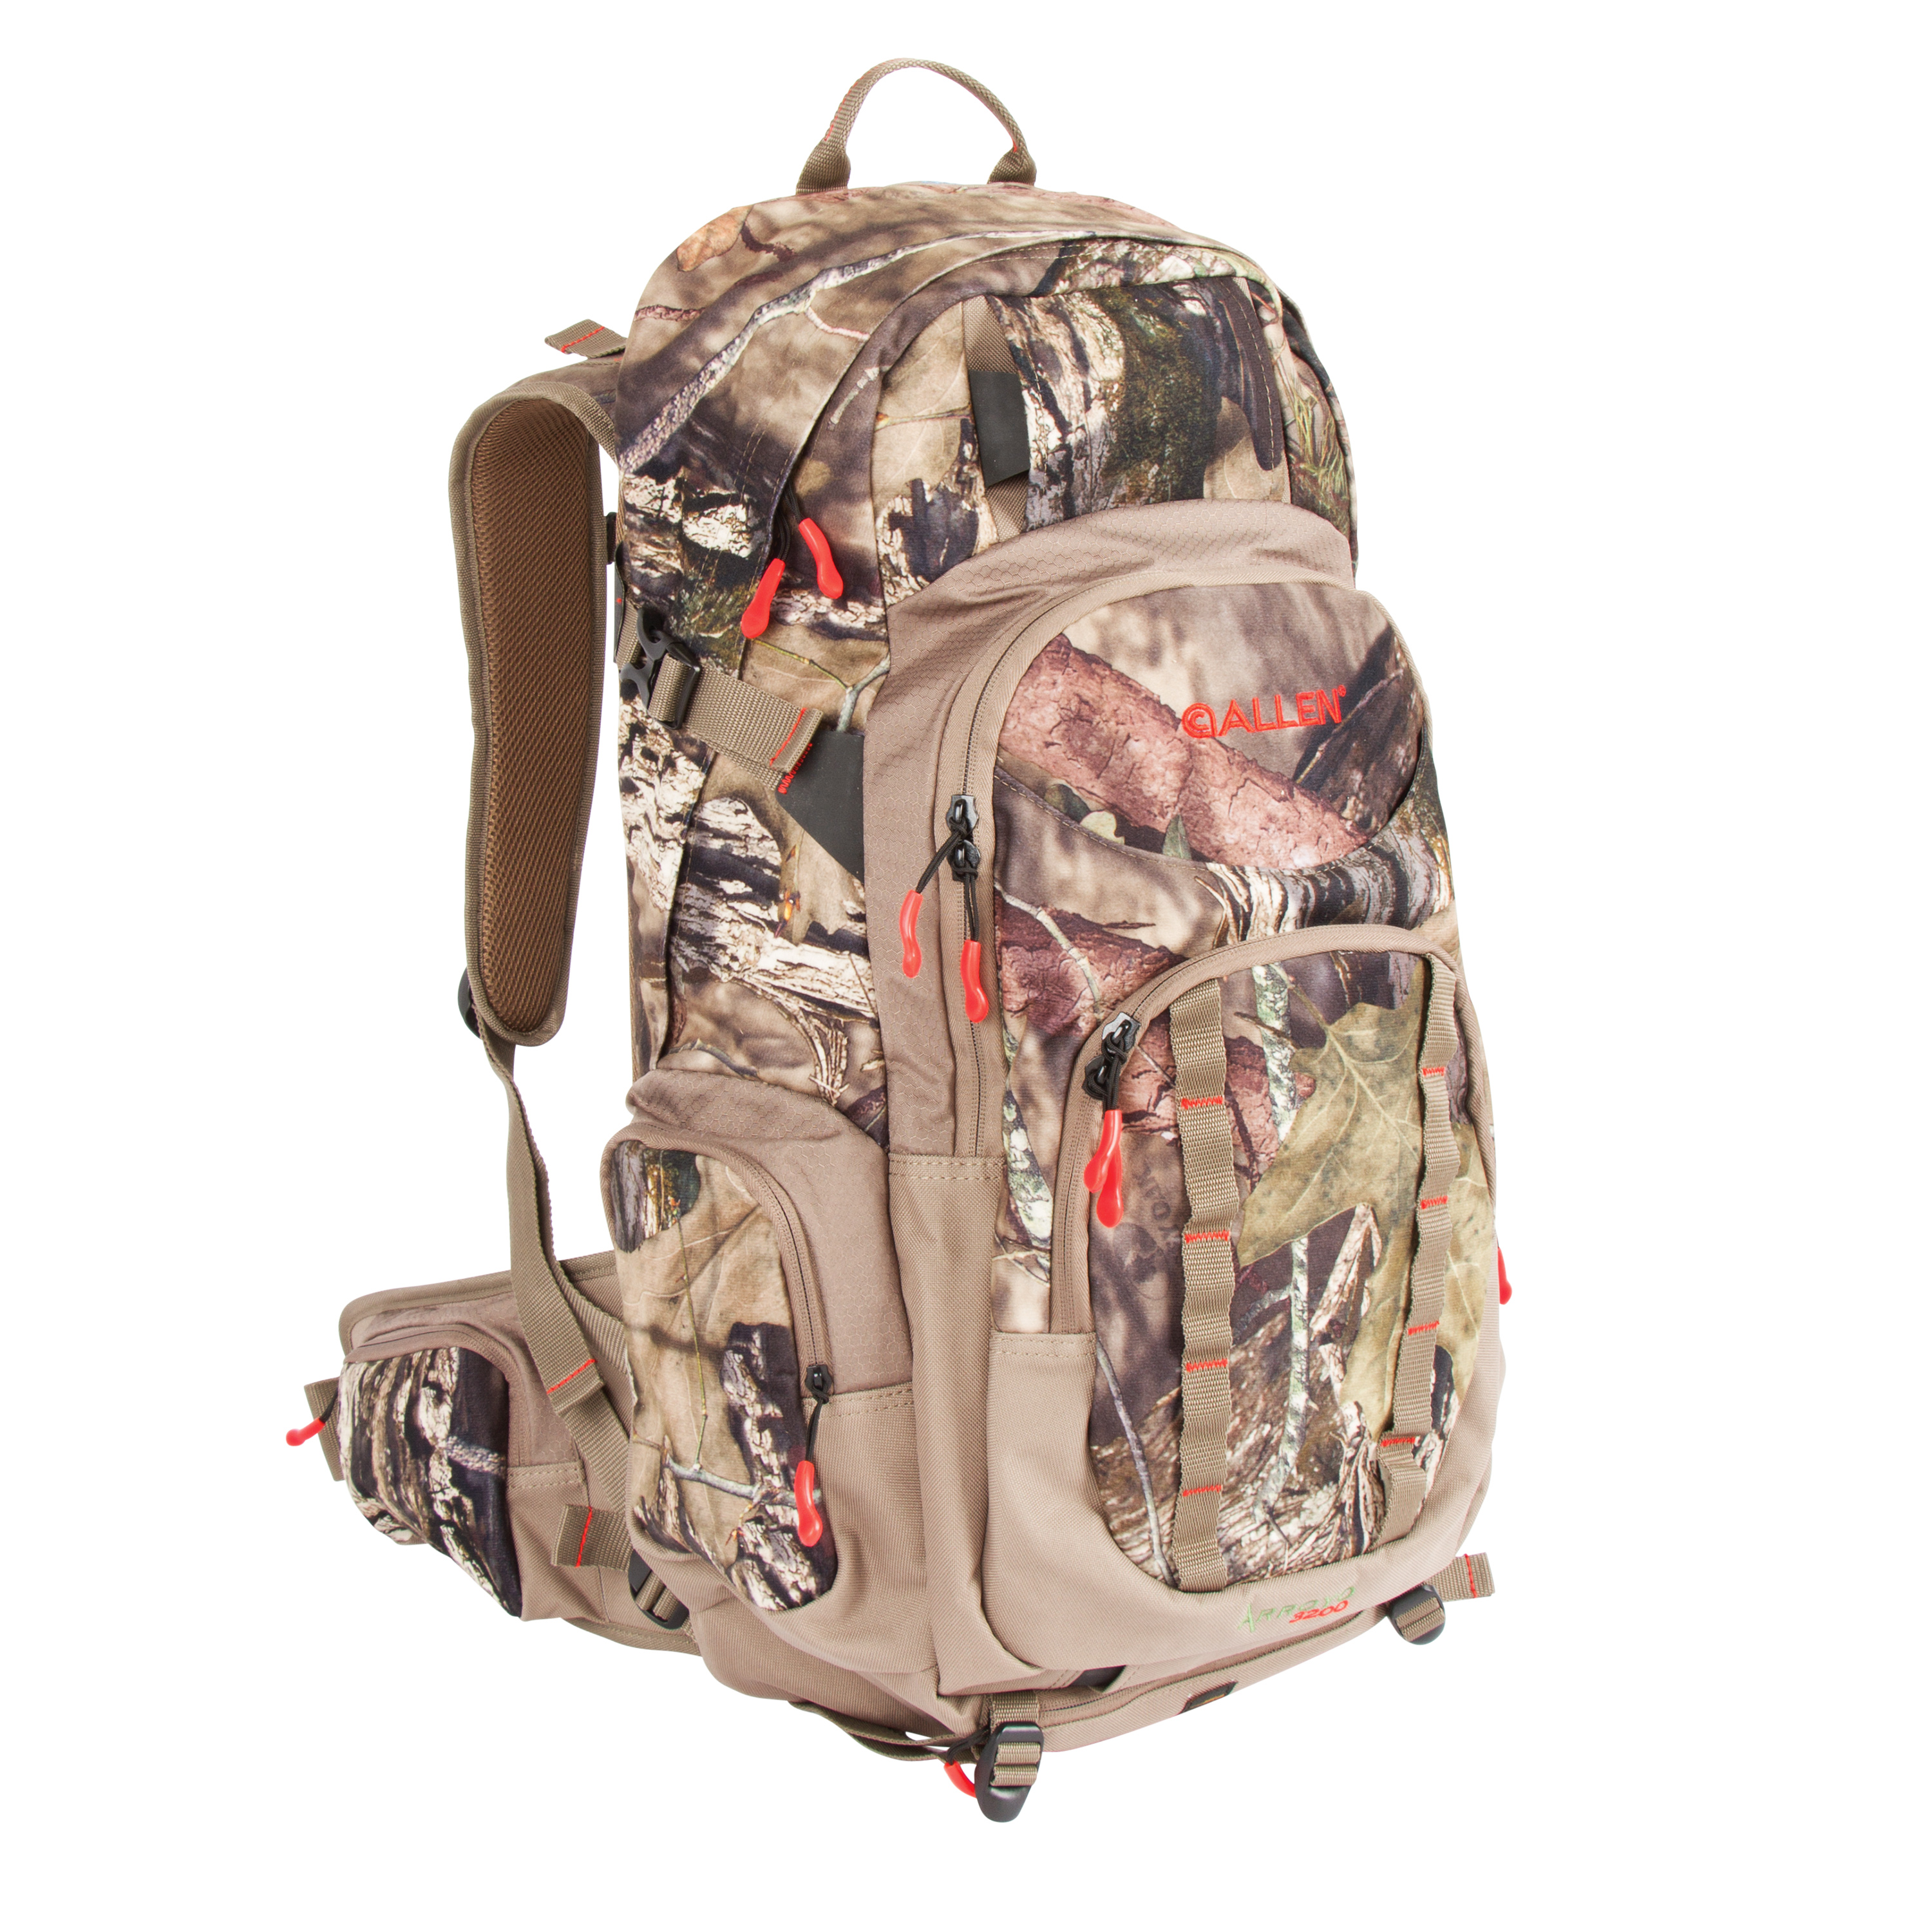 Daypack Arroyo 3200, Mossy Oak Break-Up Country by Allen Company